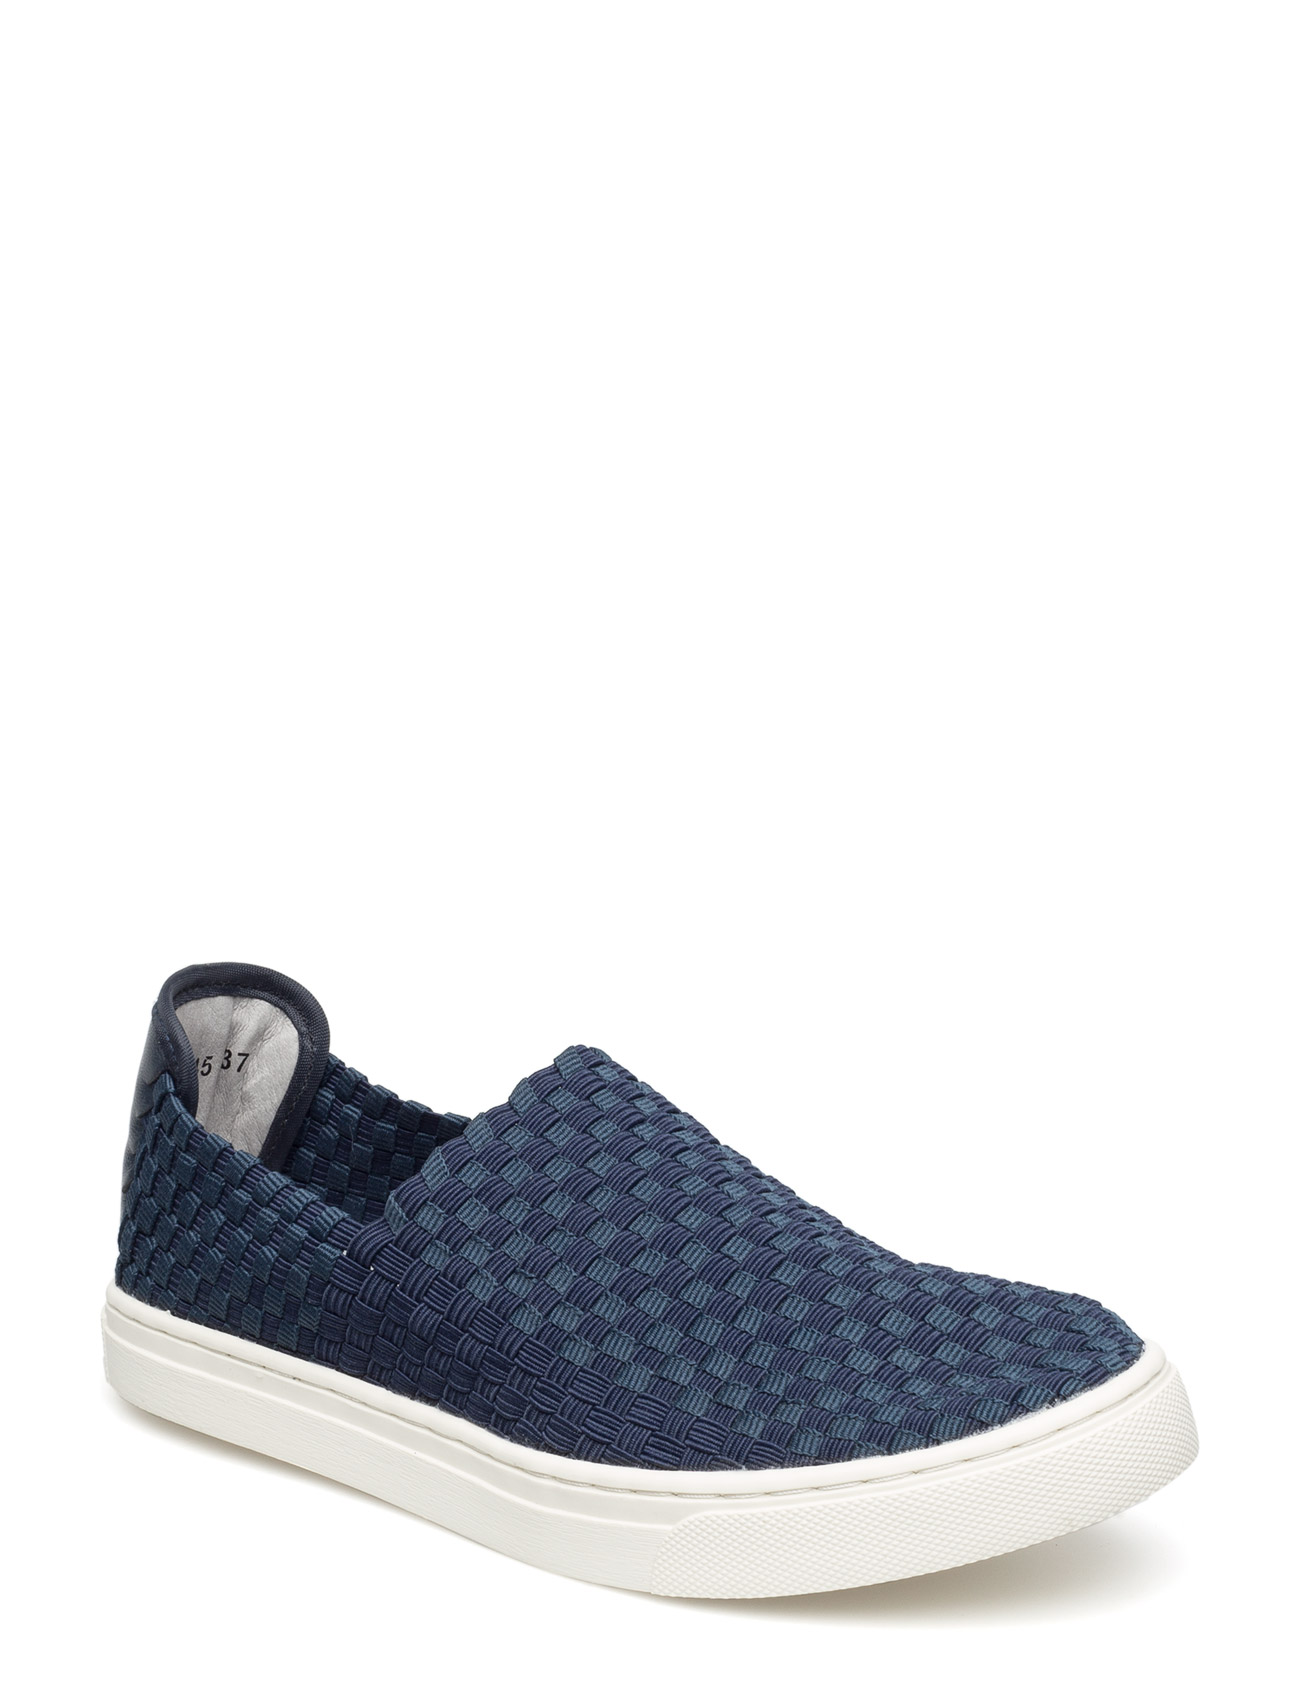 Picadilly Circus Braided Sneakers Rugged Gear Sneakers til Damer i Navy blå